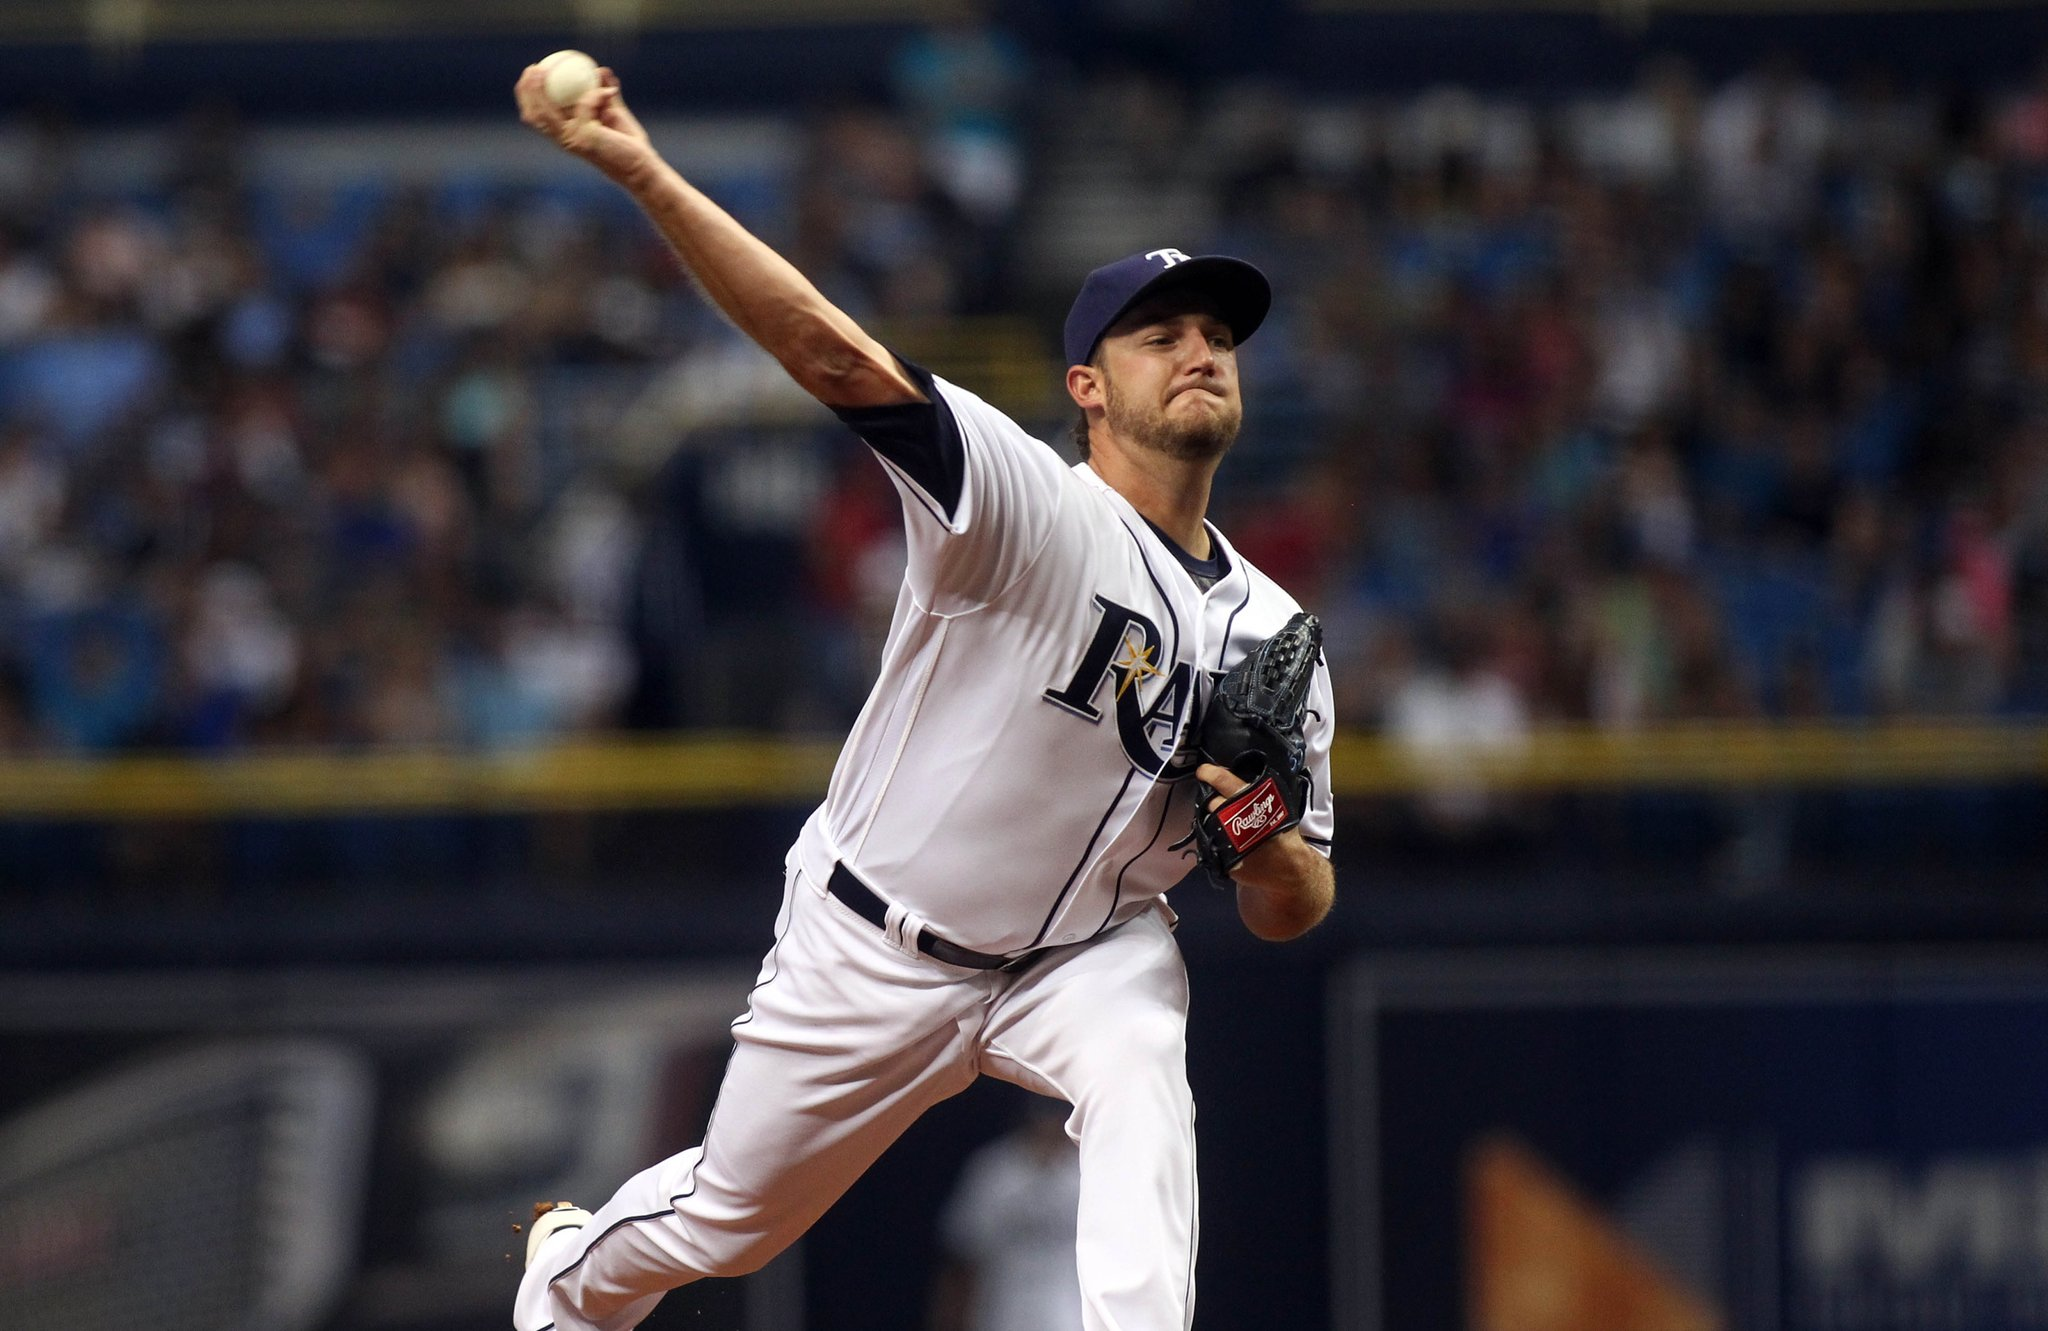 Matt Andriese gets the start Wednesday opposite of Rick Porcello. He's 1-0, 0.00 ERA in three appearances (one start) vs. the Red Sox. (Photo Credit: Tampa Bay Rays)